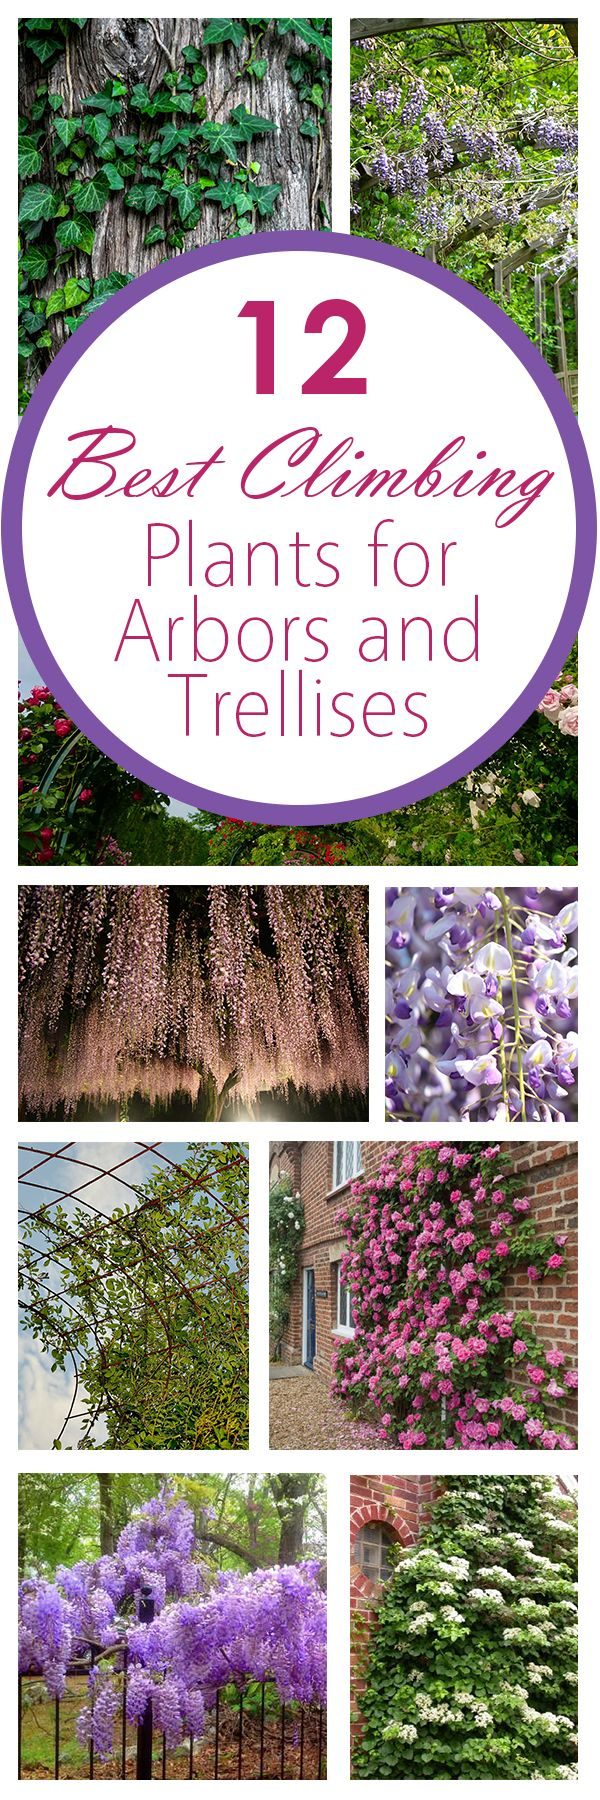 12 Best Climbing Plants for Arbors and Trellises. William – some great ideas for the condo after our wedding weddingmusicproje…